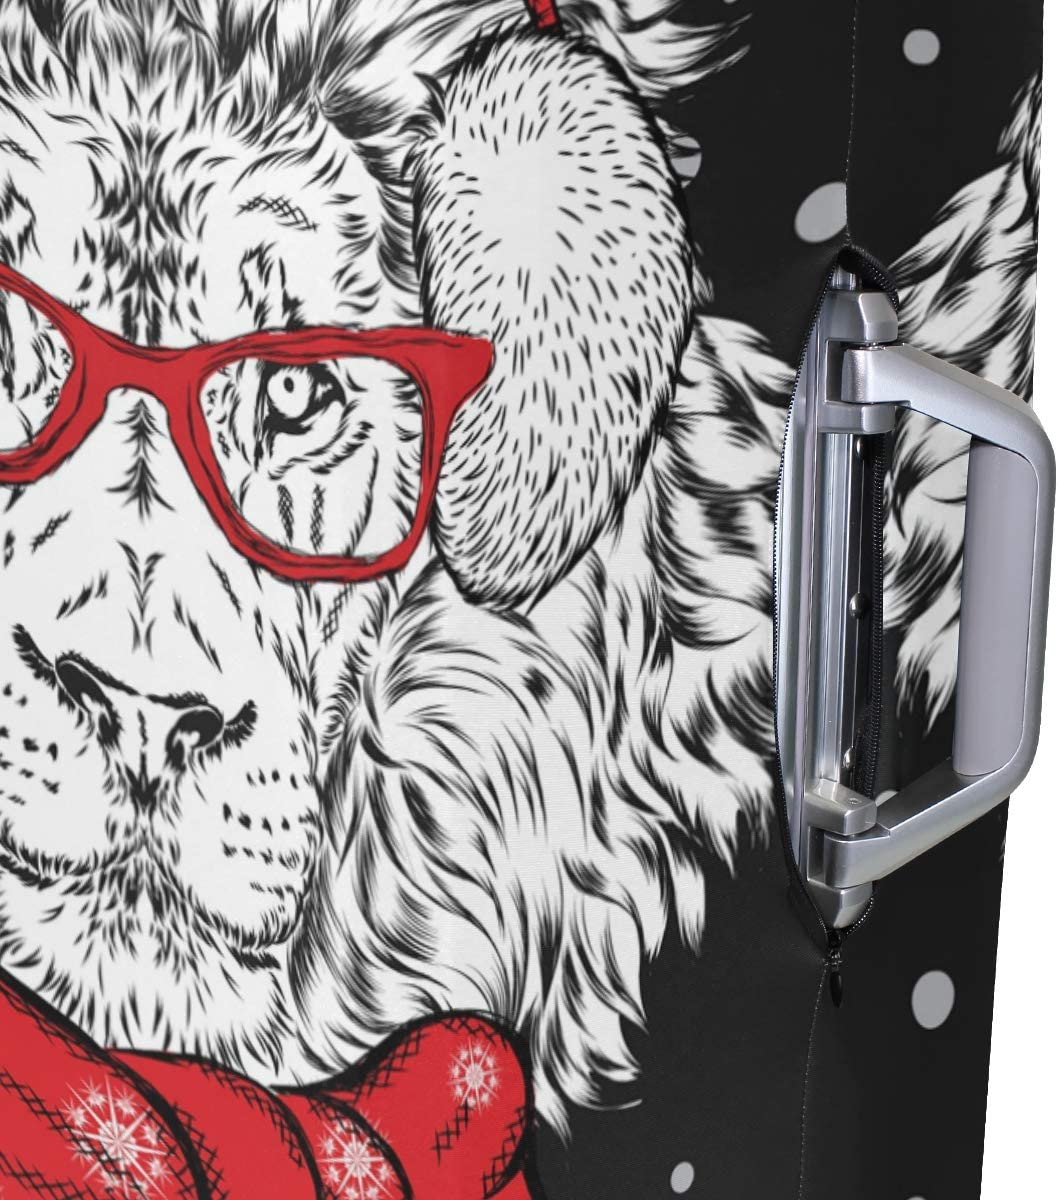 GIOVANIOR Beautiful Lion In Winter Scarf And Headphones Luggage Cover Suitcase Protector Carry On Covers